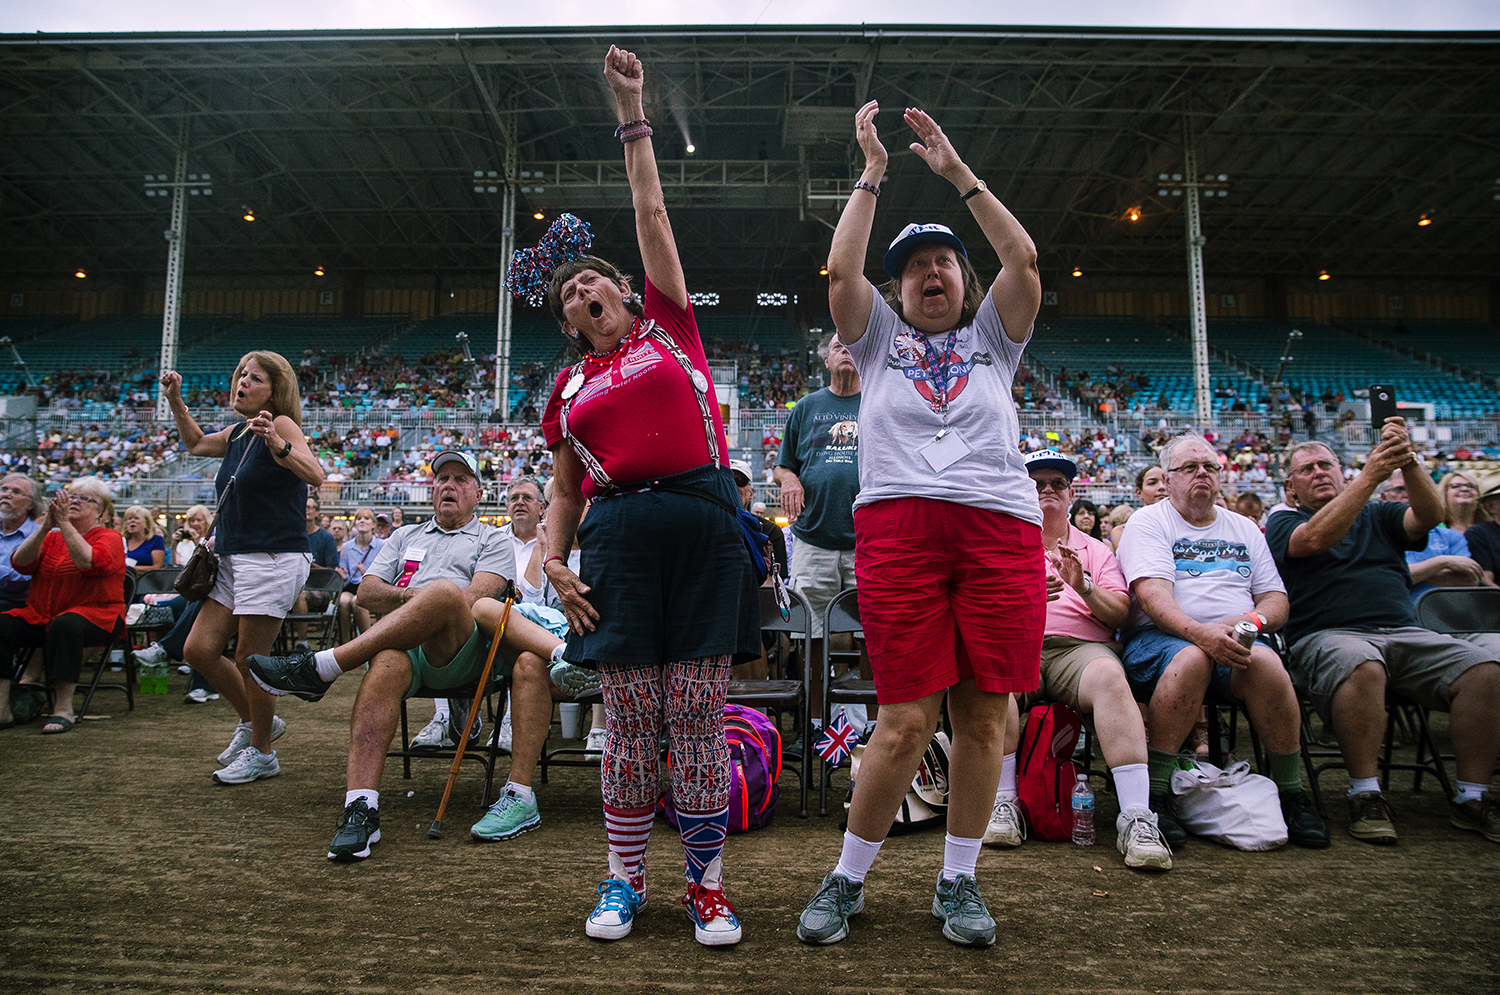 Glenda Street, left, and Debbie Sinks cheer for Peter Noone as he performs with Herman's Hermits during the Illinois State Fair Aug. 14. Ted Schurter/The State Journal-Register